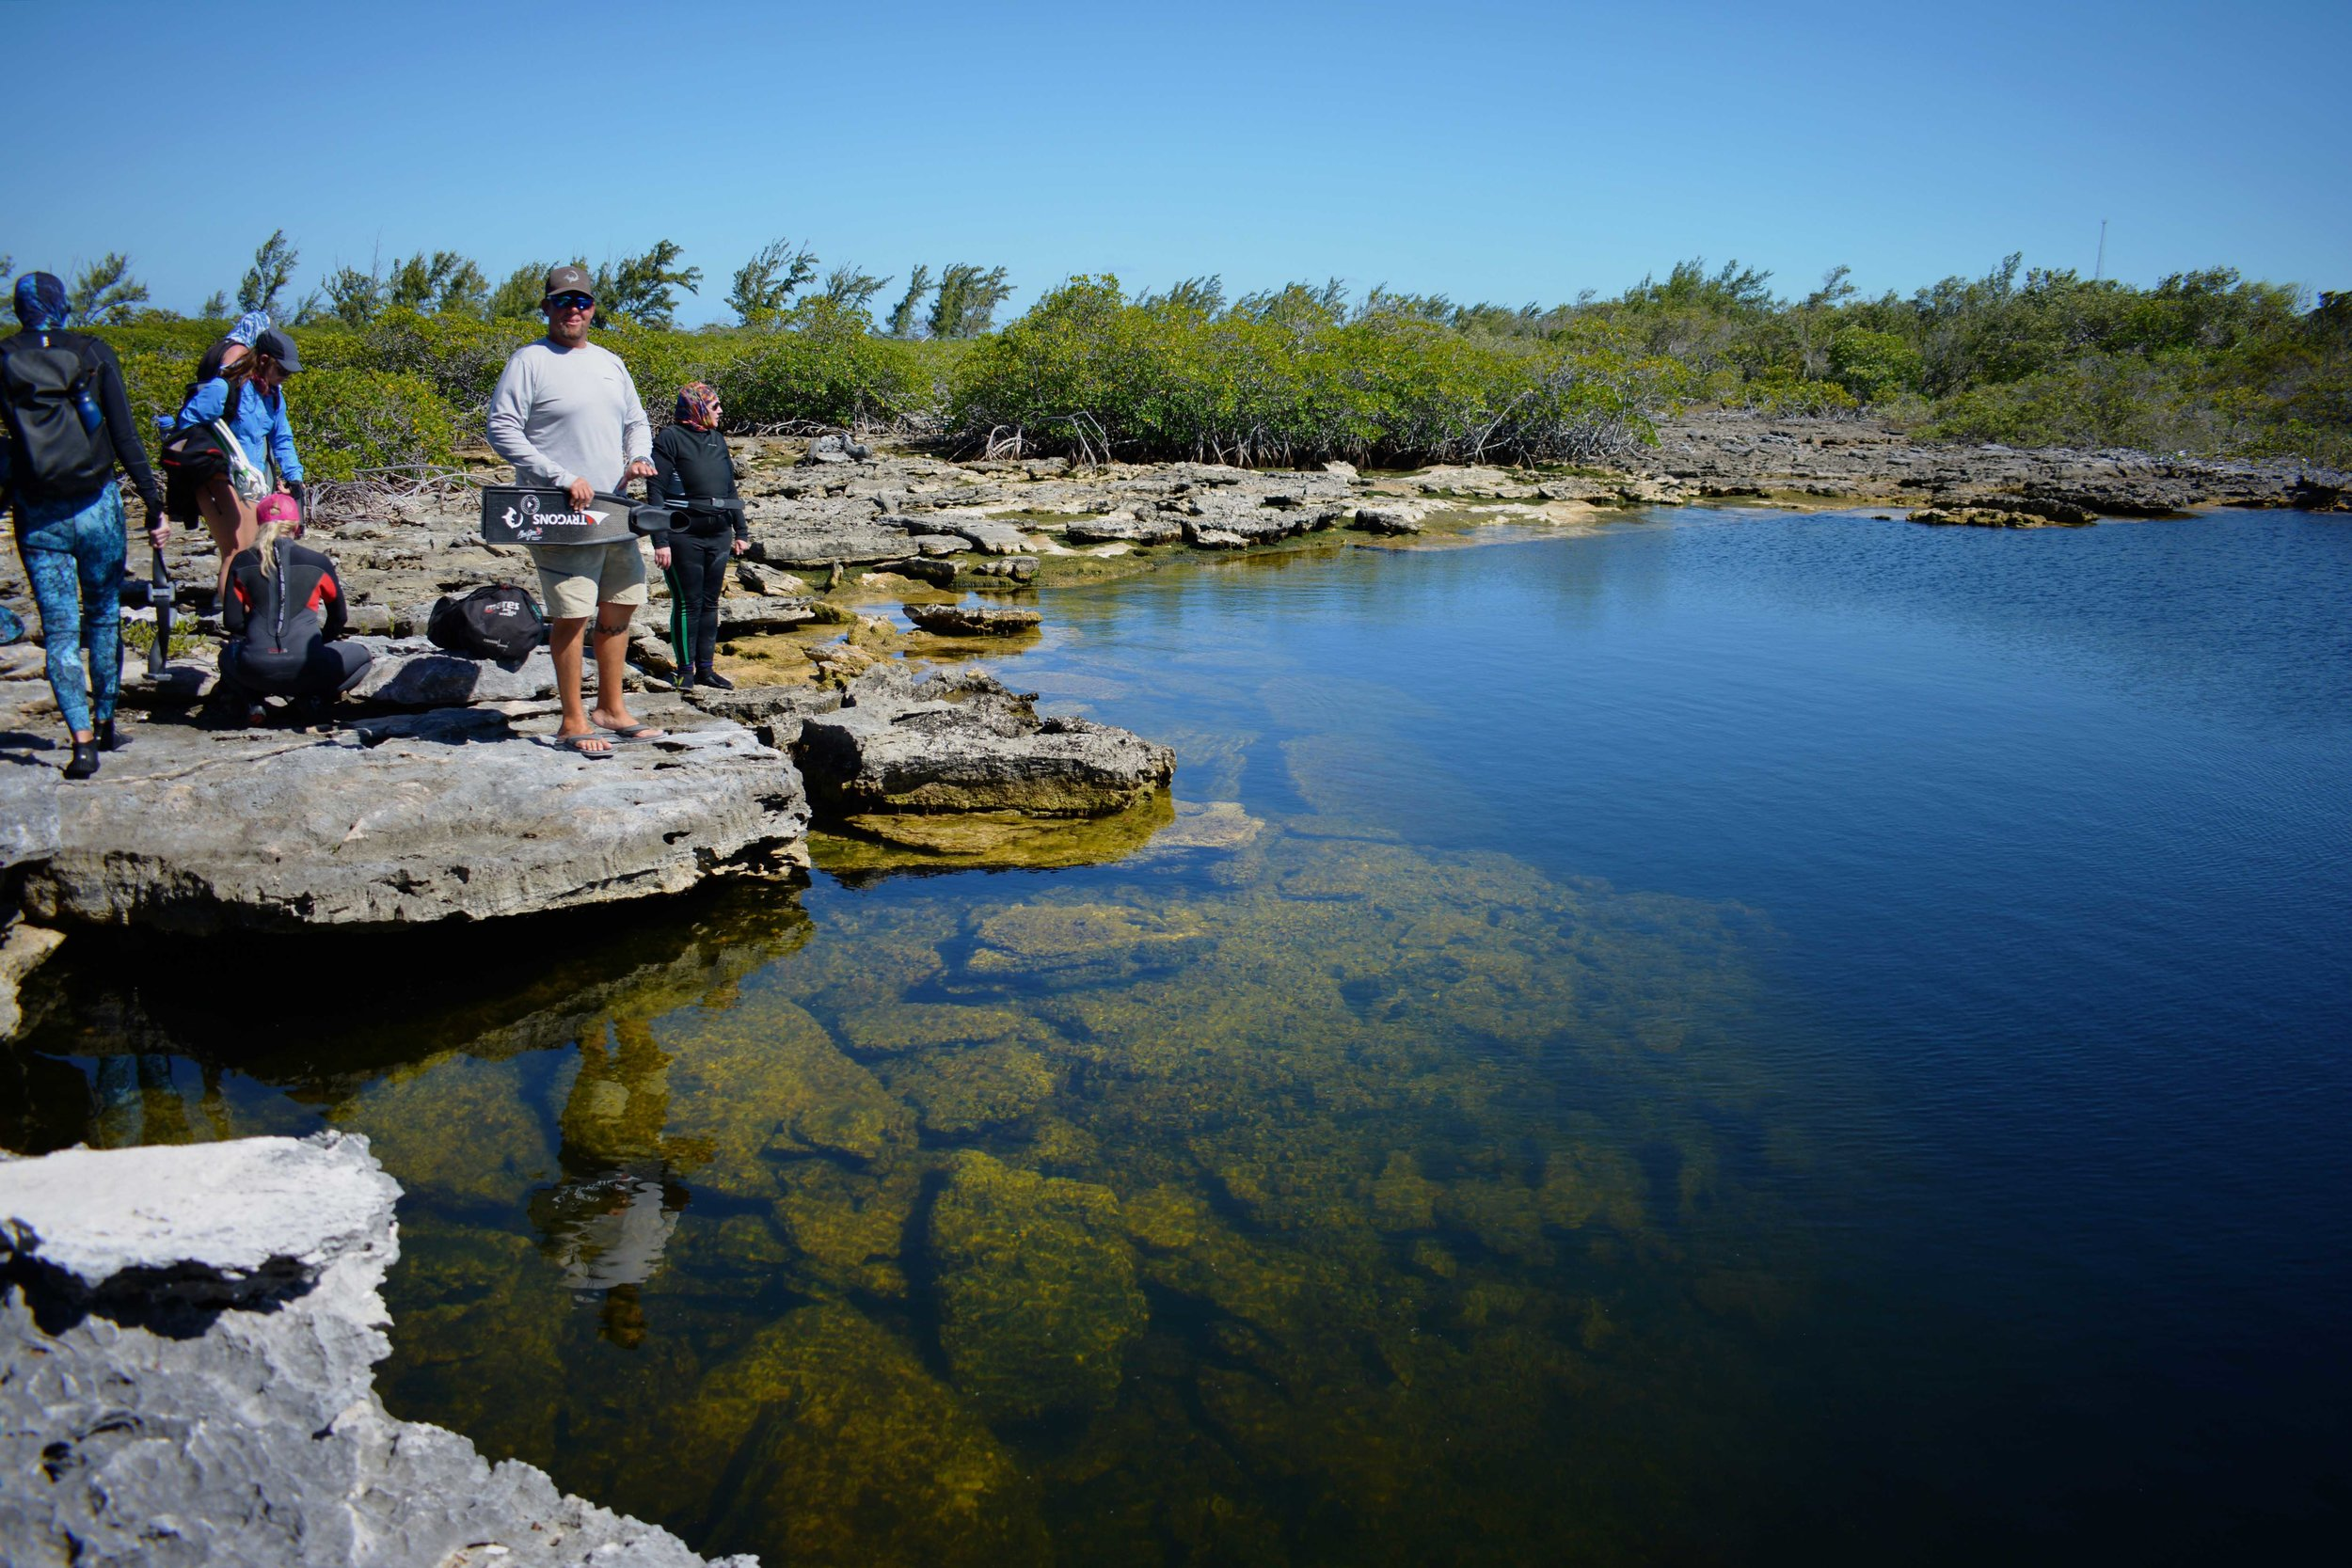 Guest visit an inland blue hole, famously explored by Jacque Cousteau